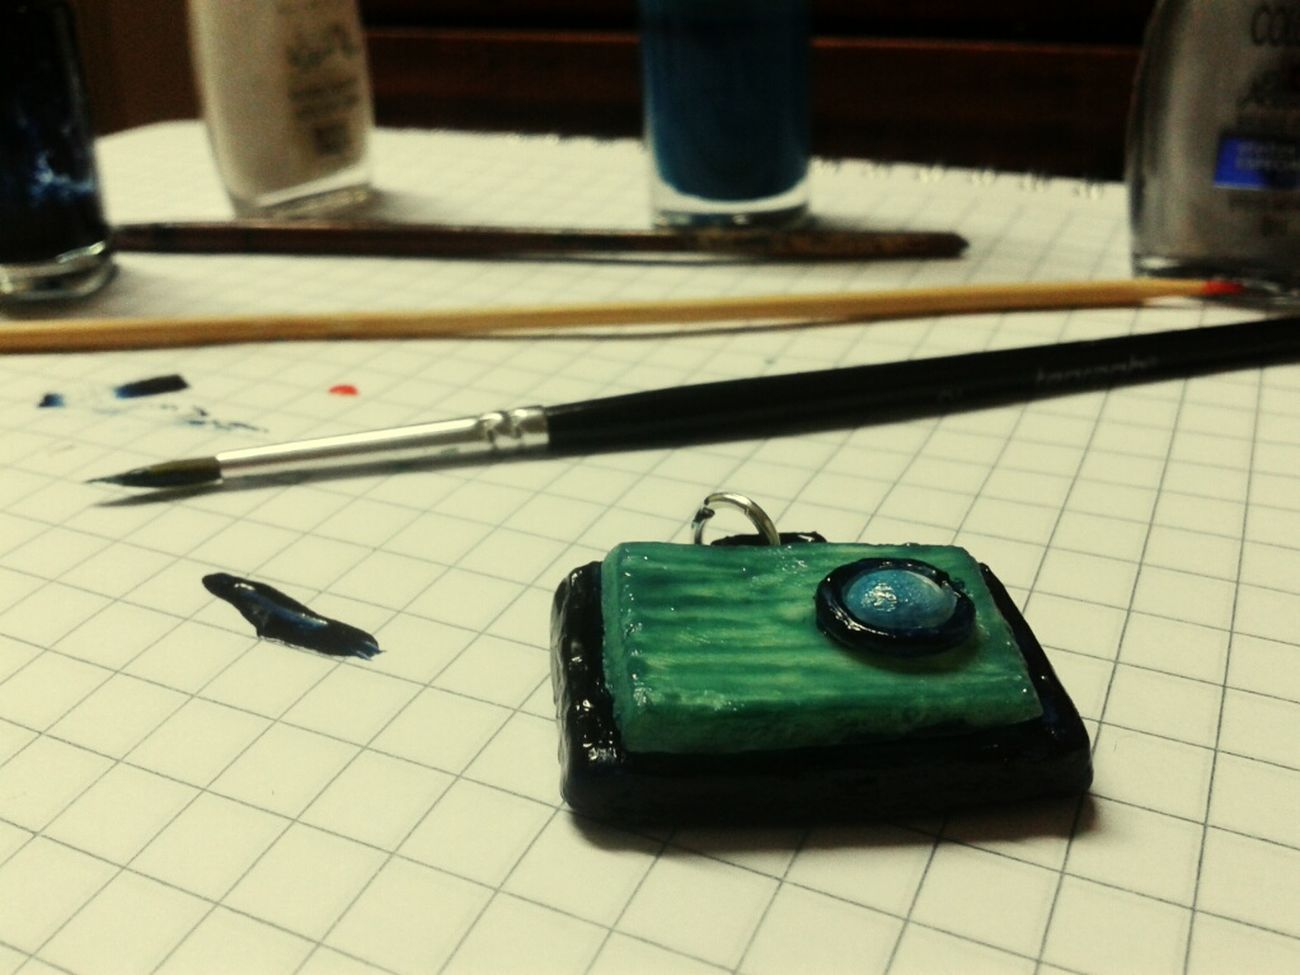 My Hobby Camera Handmade Diy Project Feel Like An Artist Painting Creating Love It